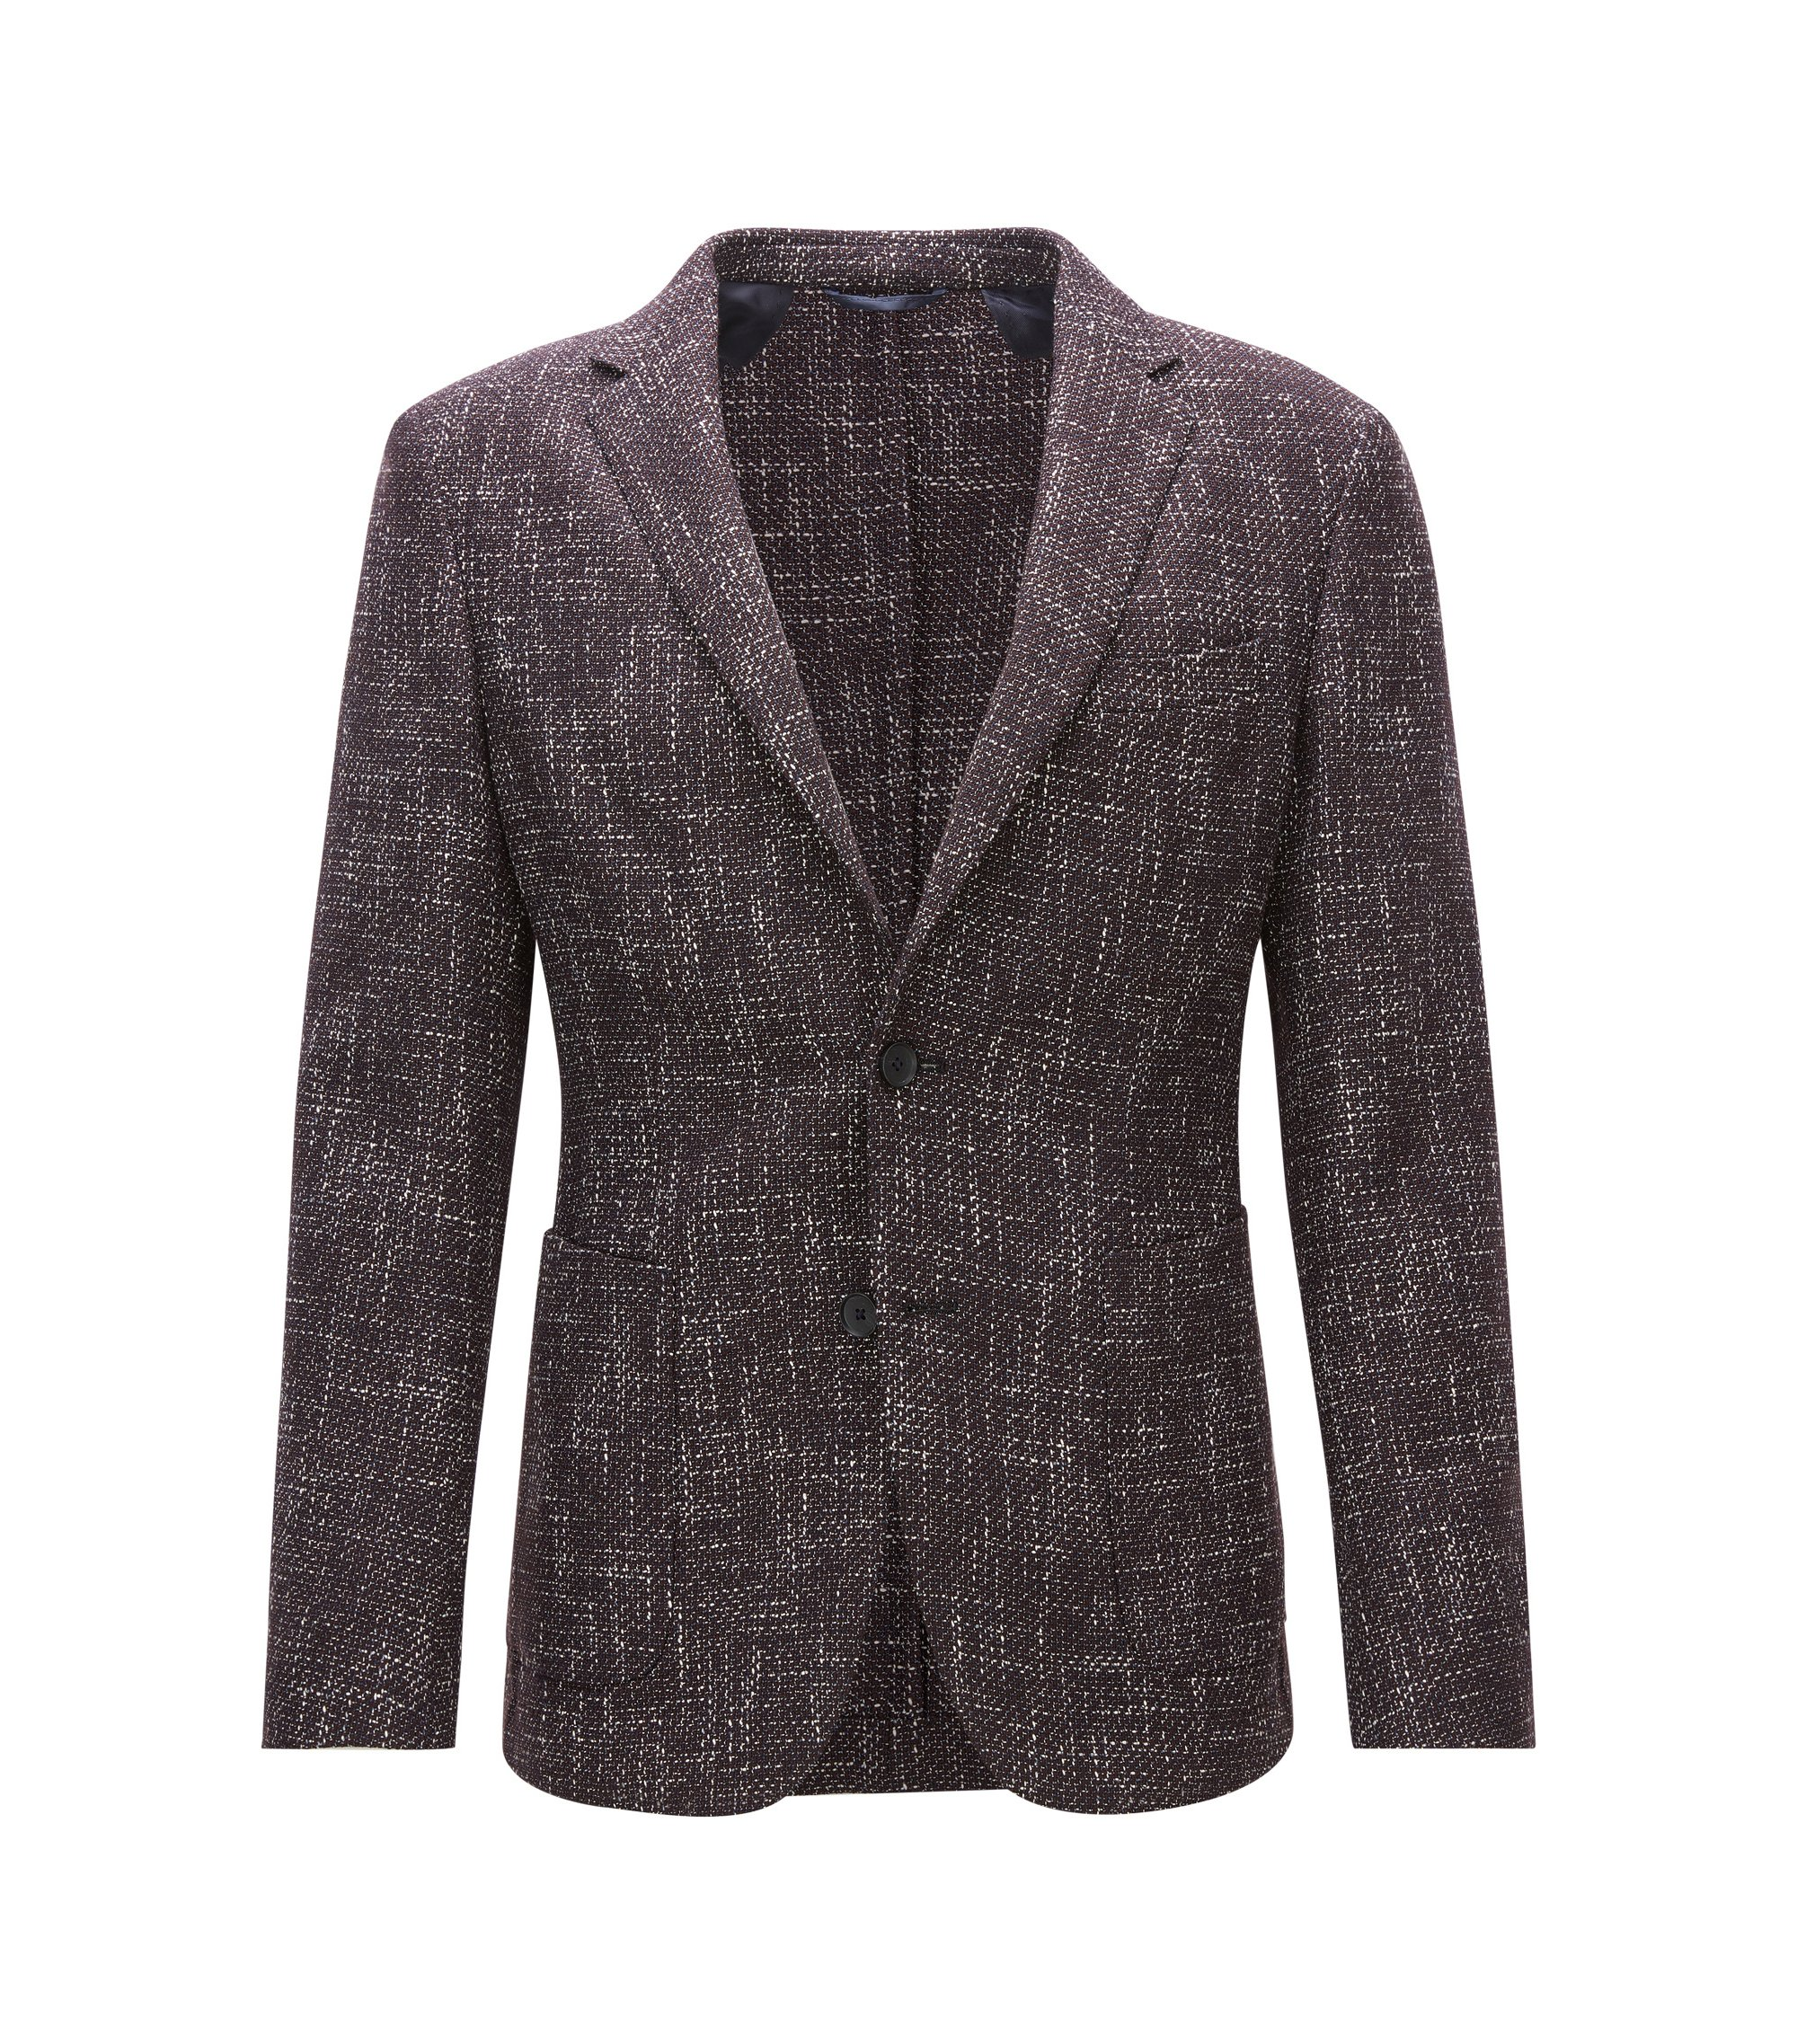 Slim-fit jacket in a mélange wool blend, Dark Red